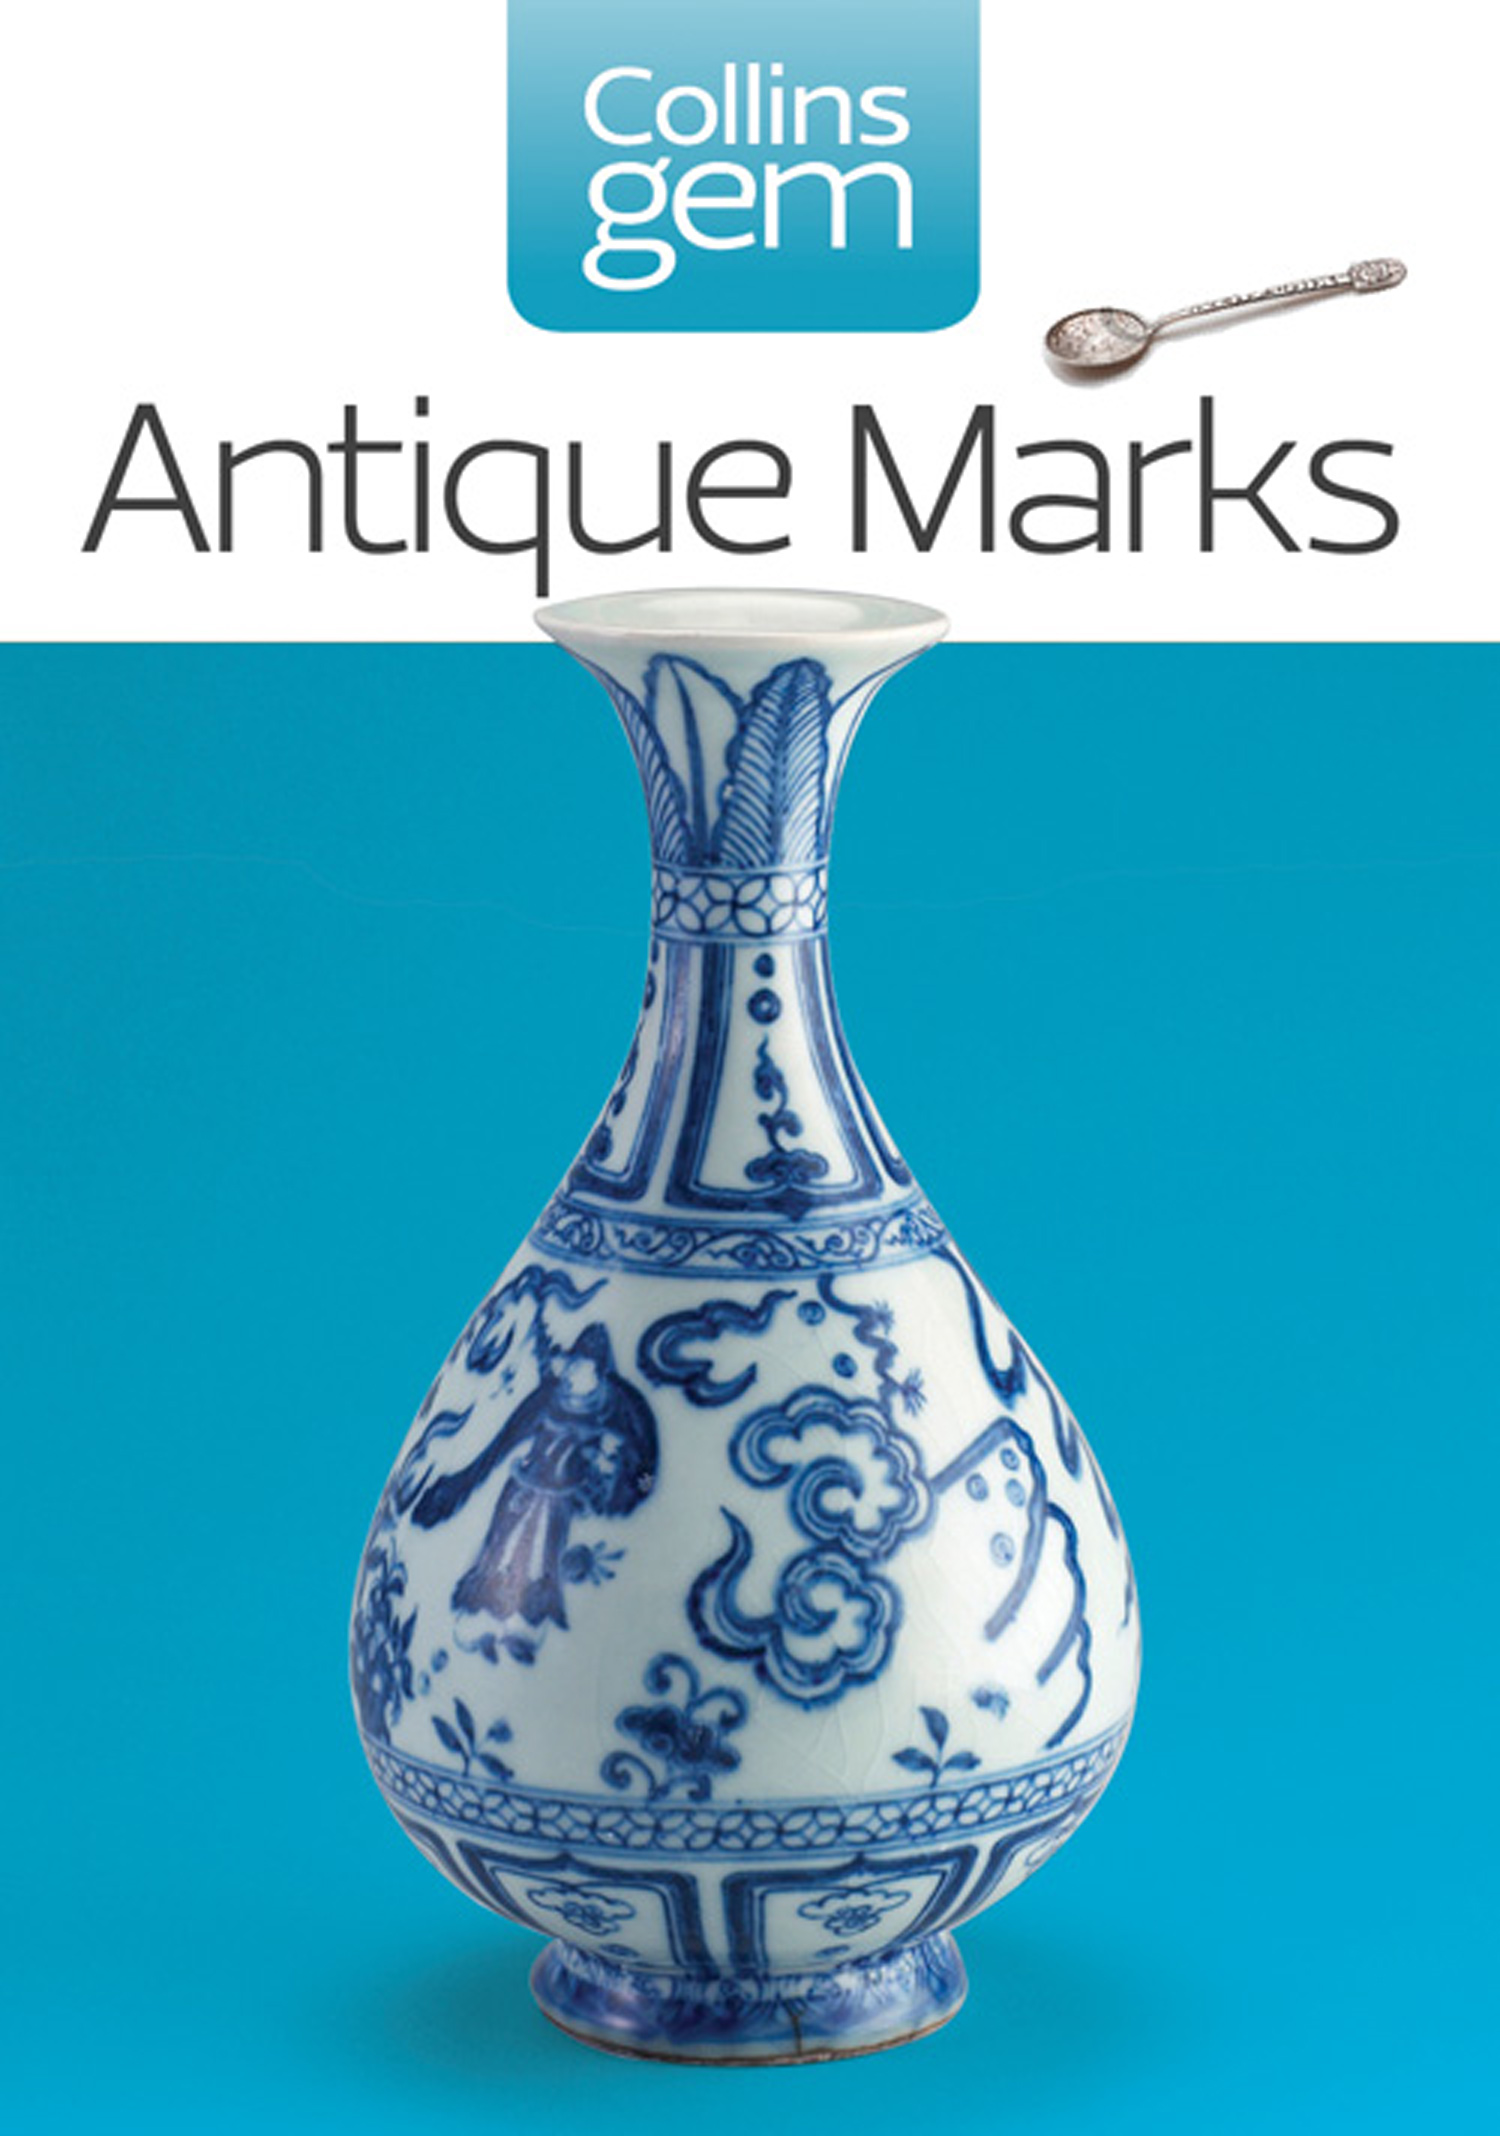 Antique Marks (Collins Gem)